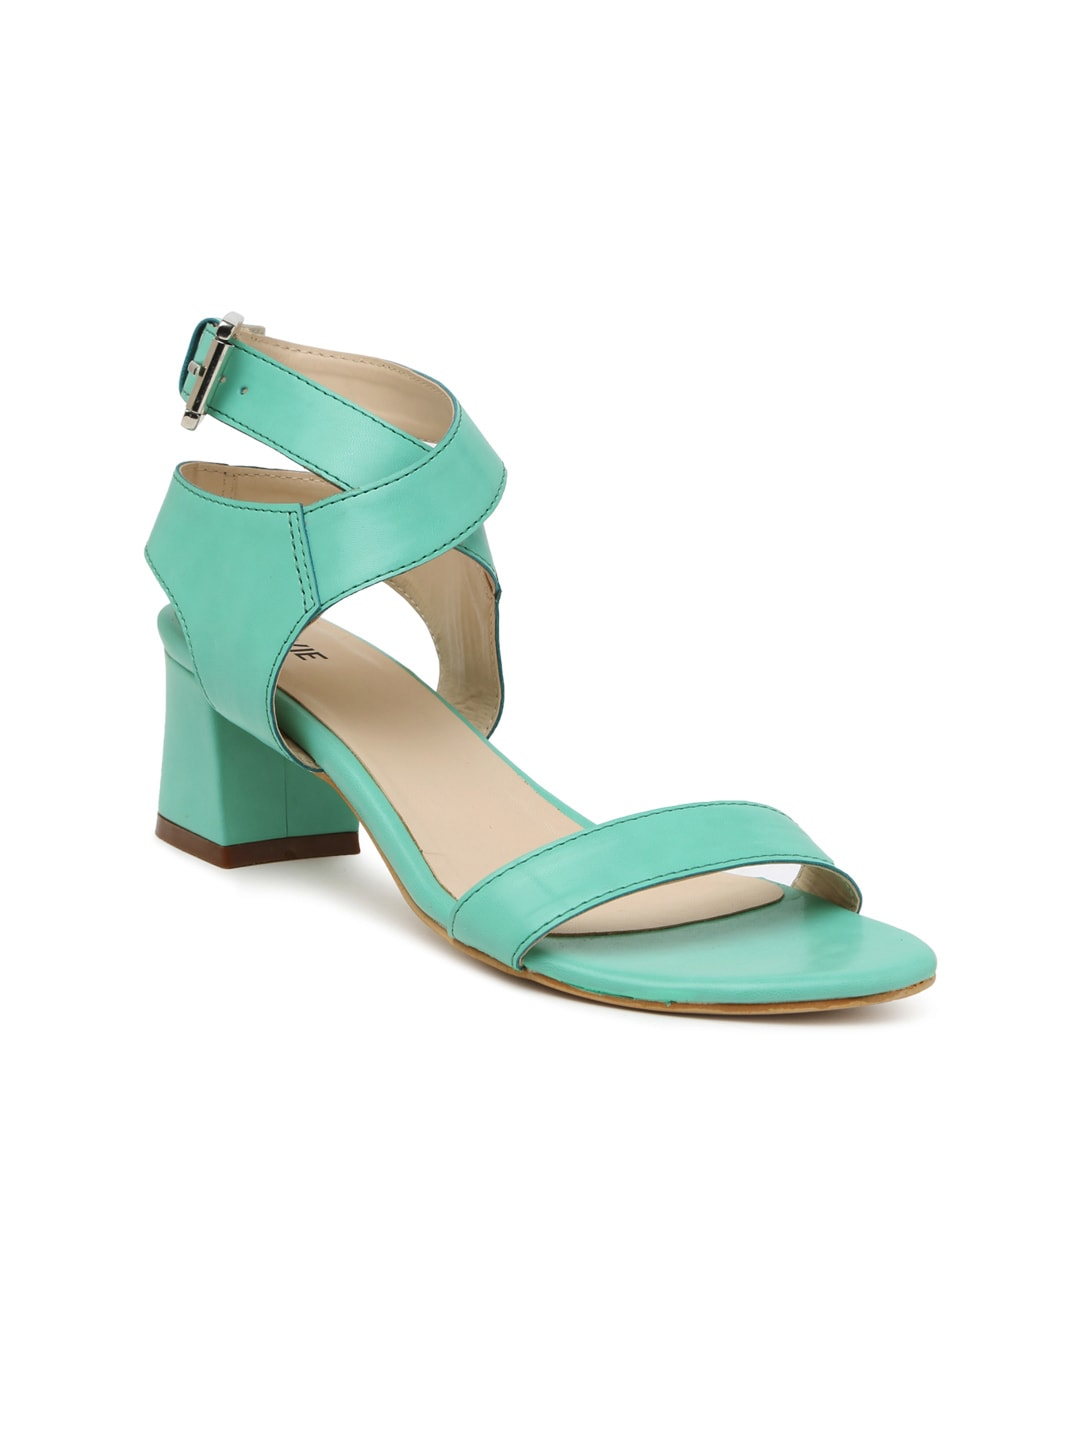 4a50104a6a9 Toe Shoes - Buy Toe Shoes online in India